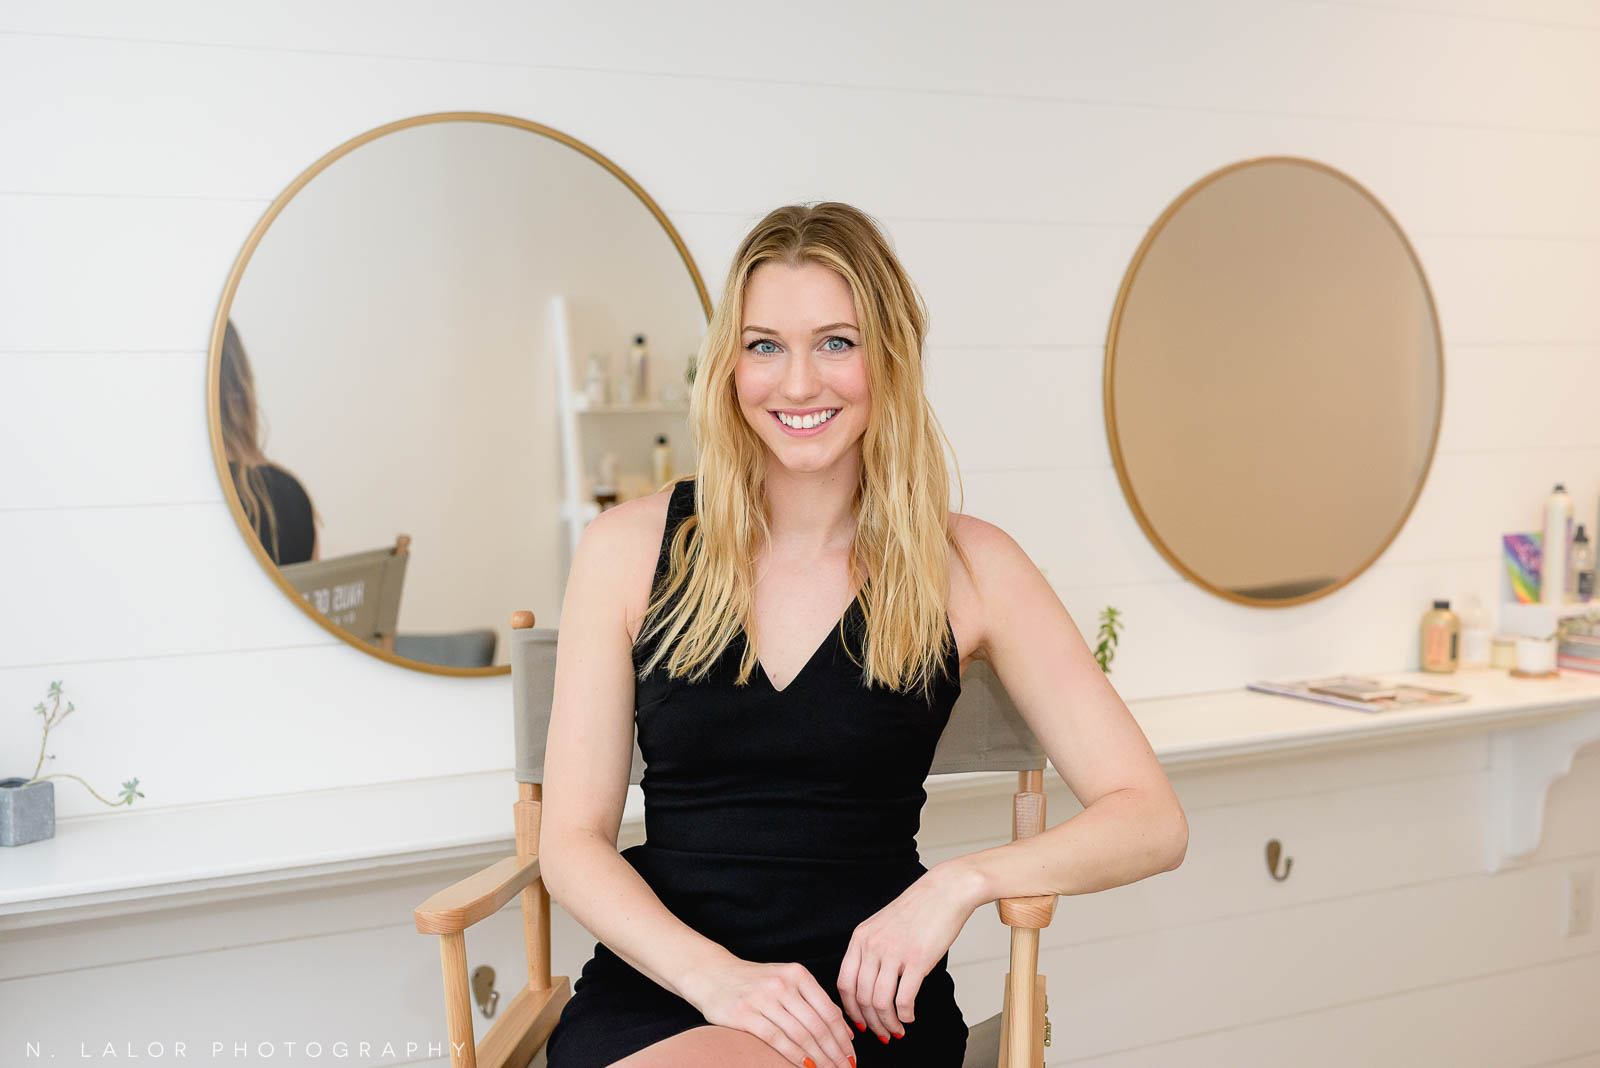 Kelsey Morey, founder of Haus of Pretty Salon in Westport, CT. Portrait by N. Lalor Photography.